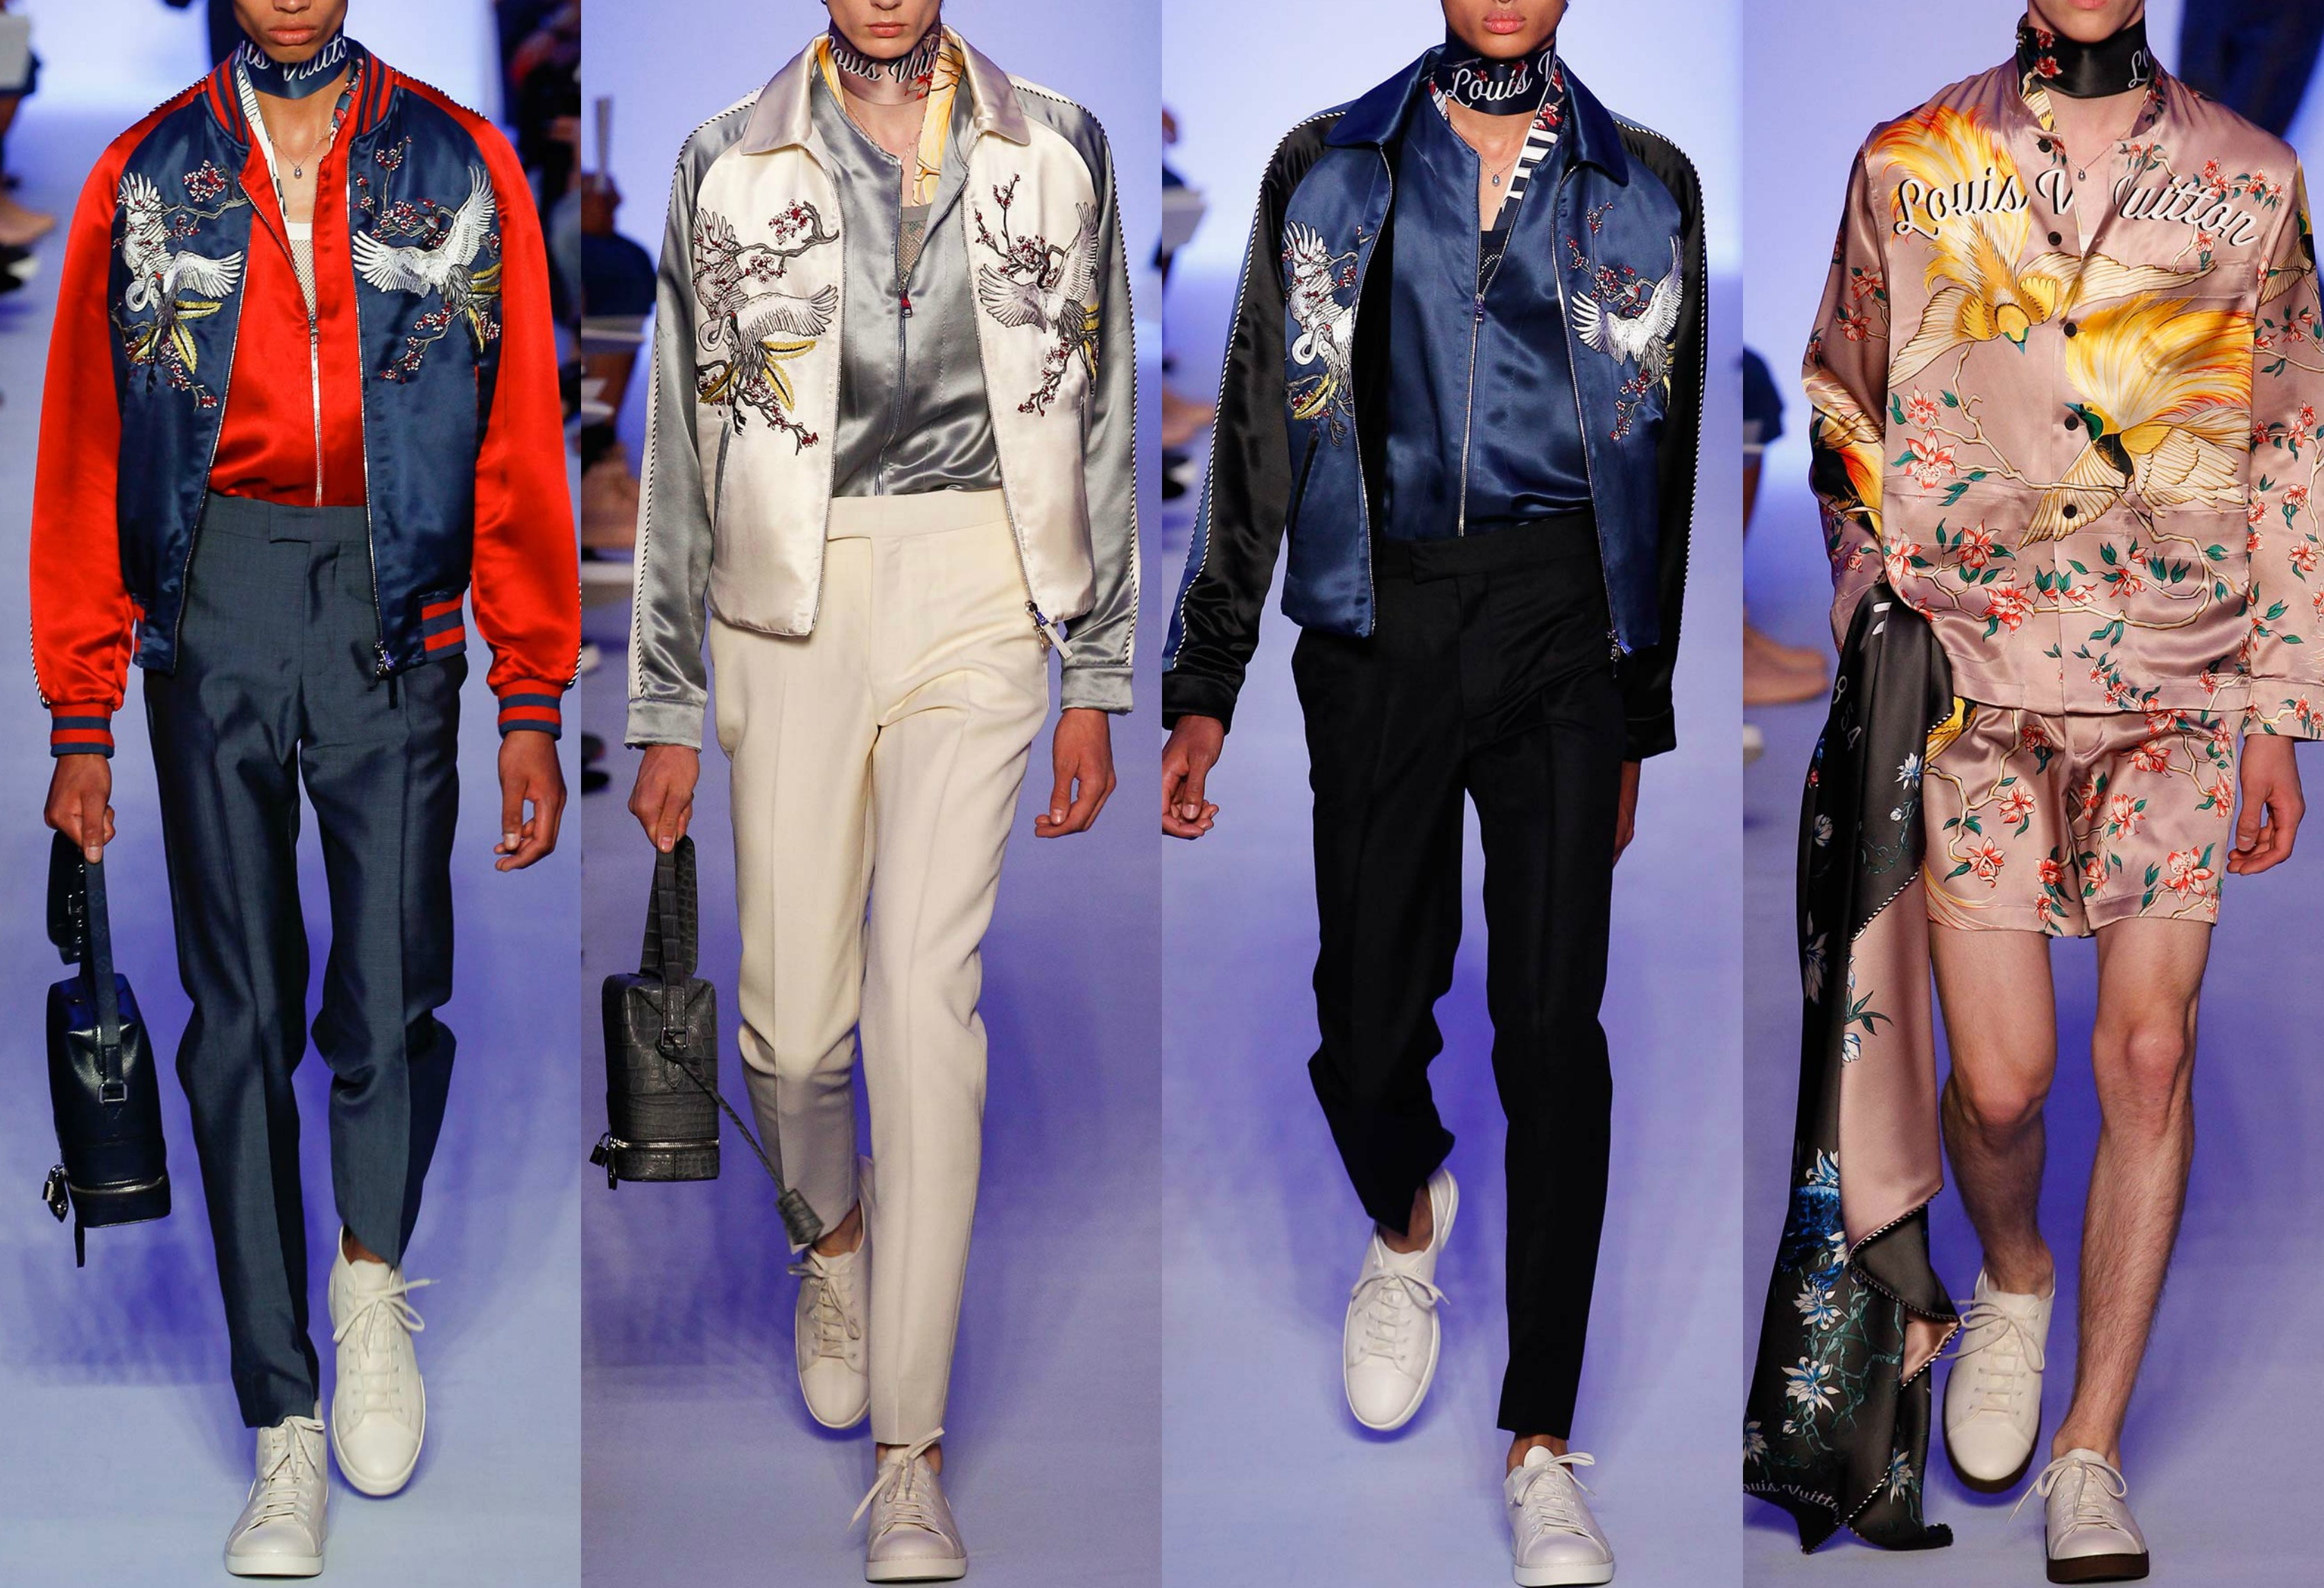 Sukojan Jackets featured heavily in Louis Vuitton's S/S 16 collection